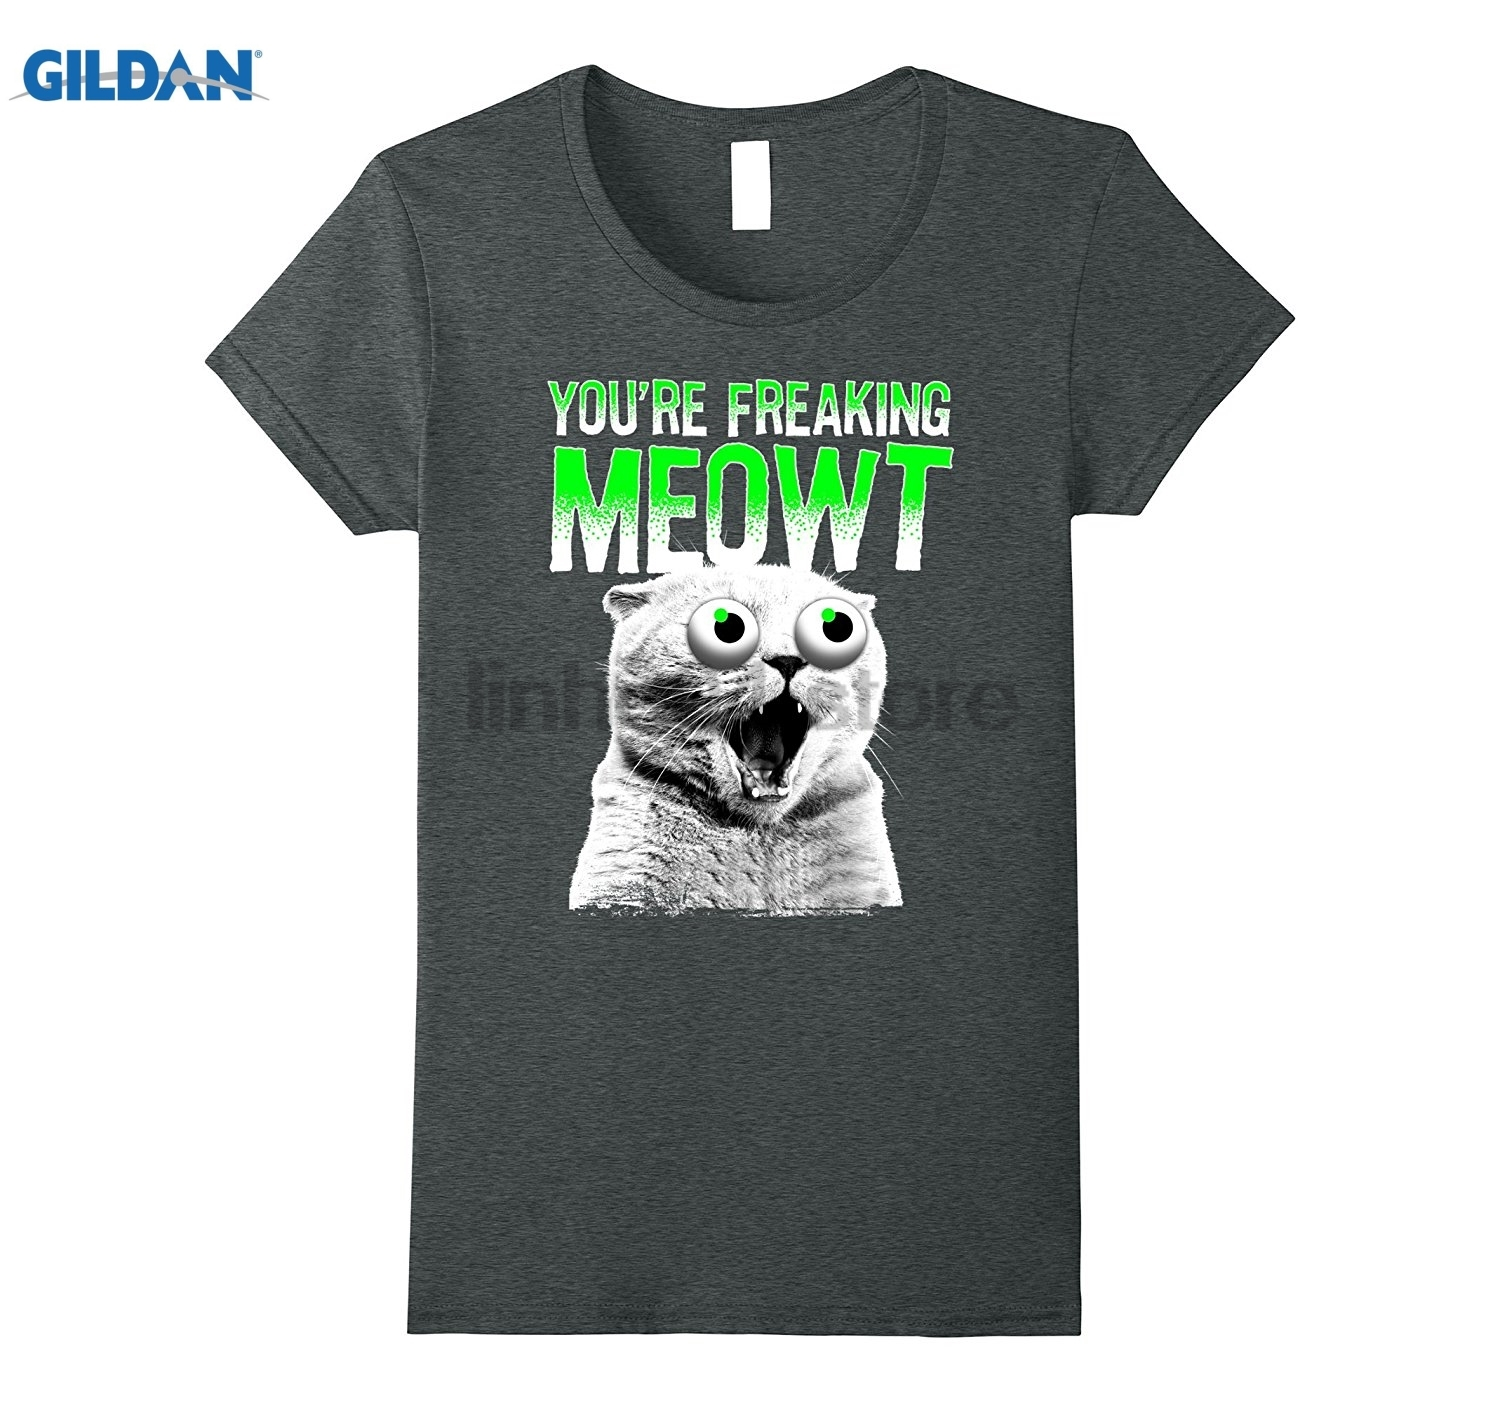 GILDAN Youre Freaking Meowt Crazy Kitty Eye Bulge Graphic T-Shirt Hot Womens T-shirt ...